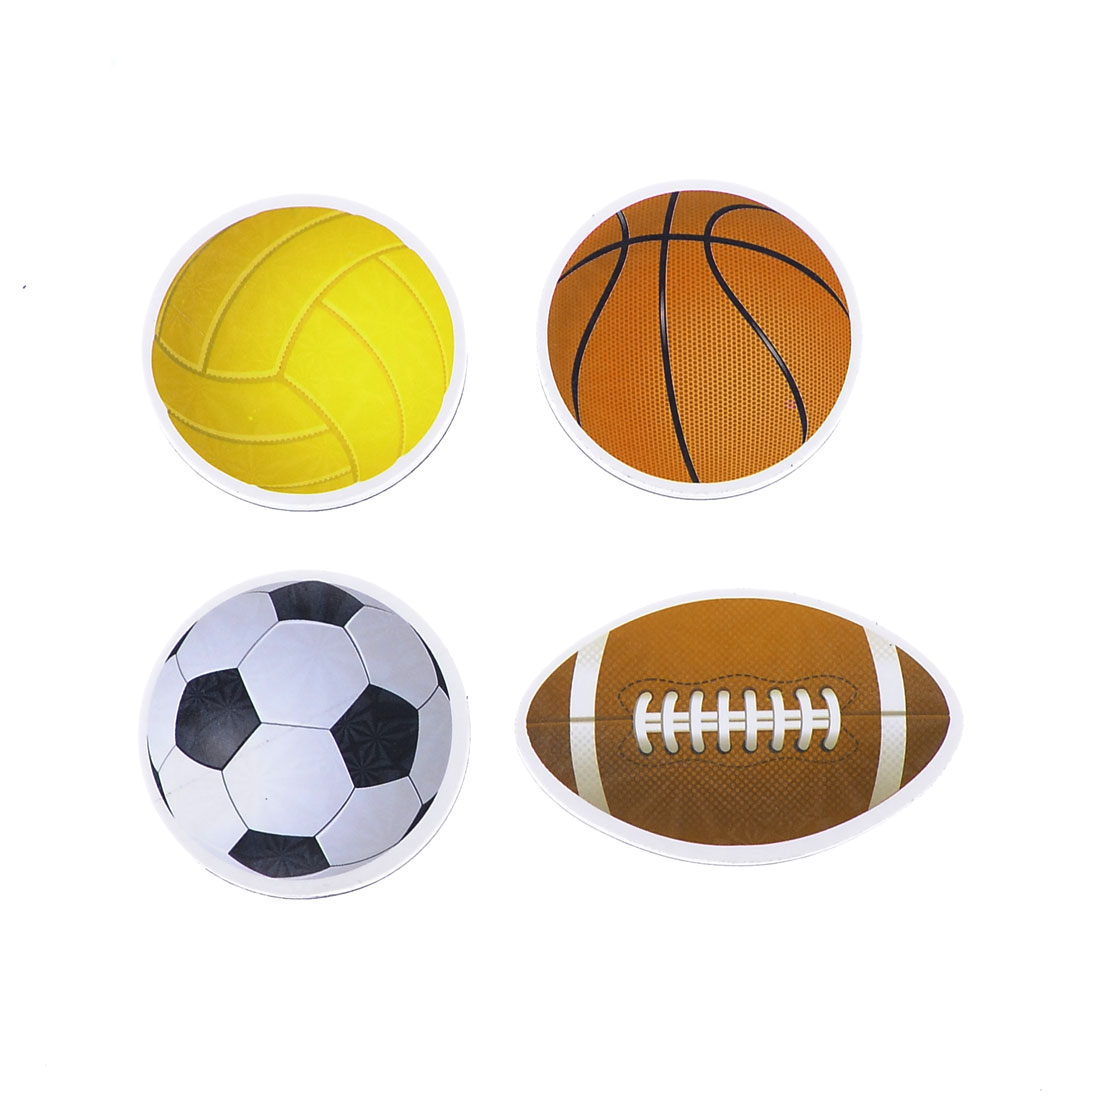 Refrigerator Football Basketball Ball Magnetic Sticker Set 4 in 1